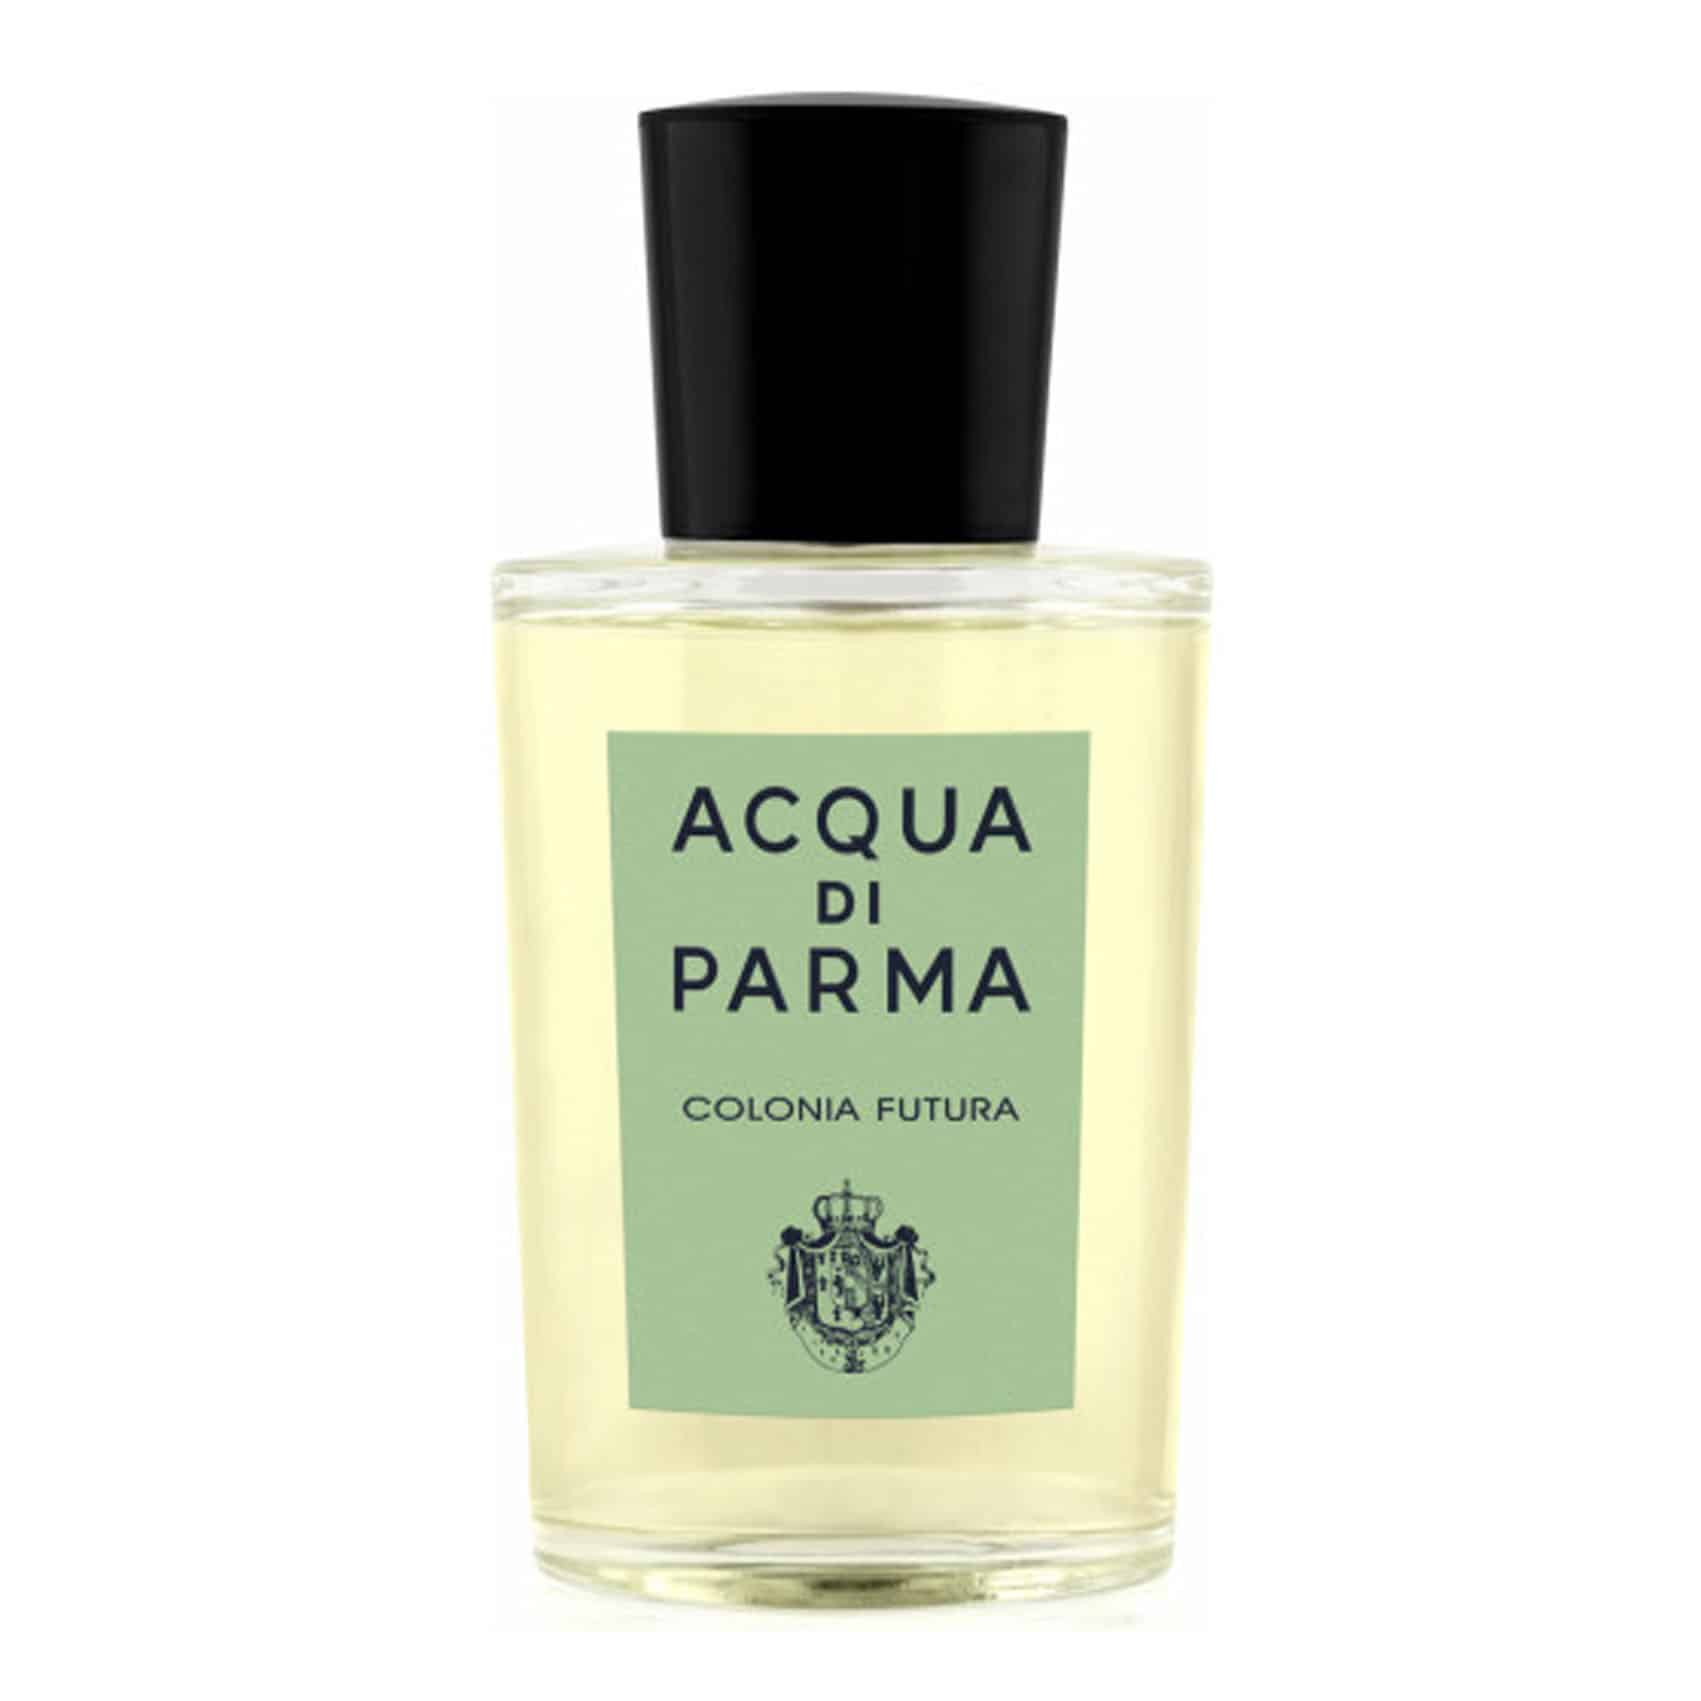 Acqua di Parma Colonia Futura Natural Spray 100ml